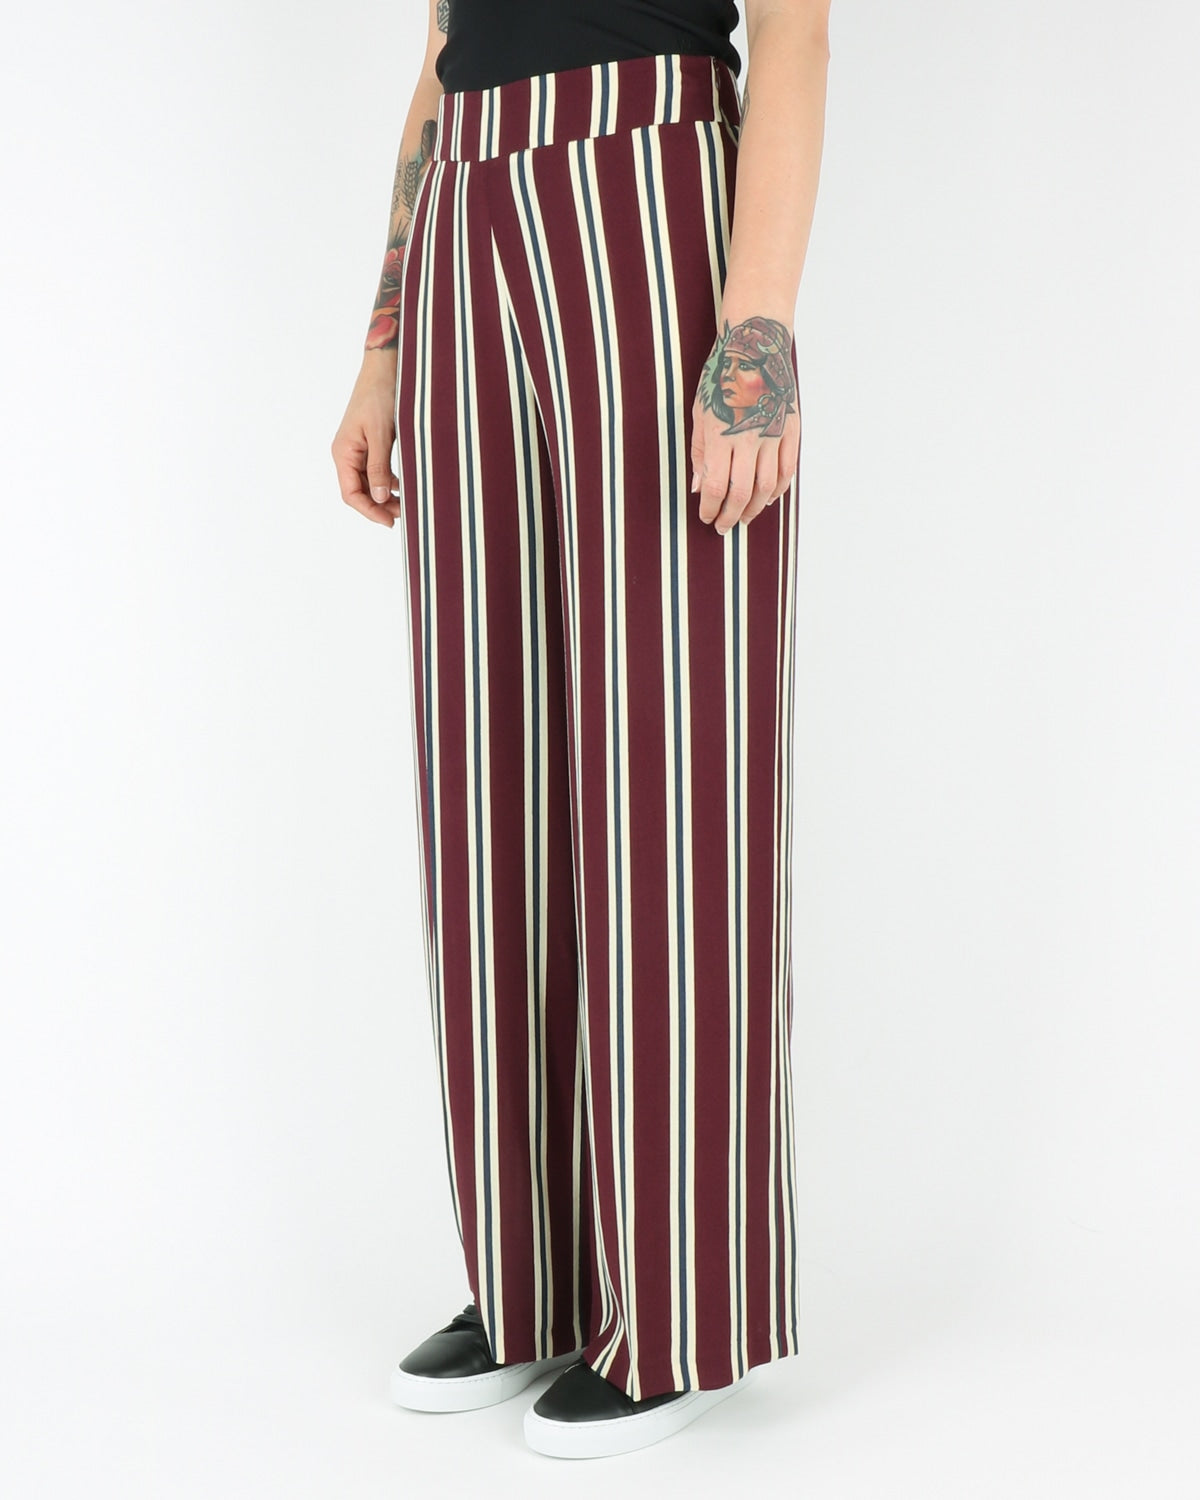 libertine libertine_blonde trousers_wine_view_2_2